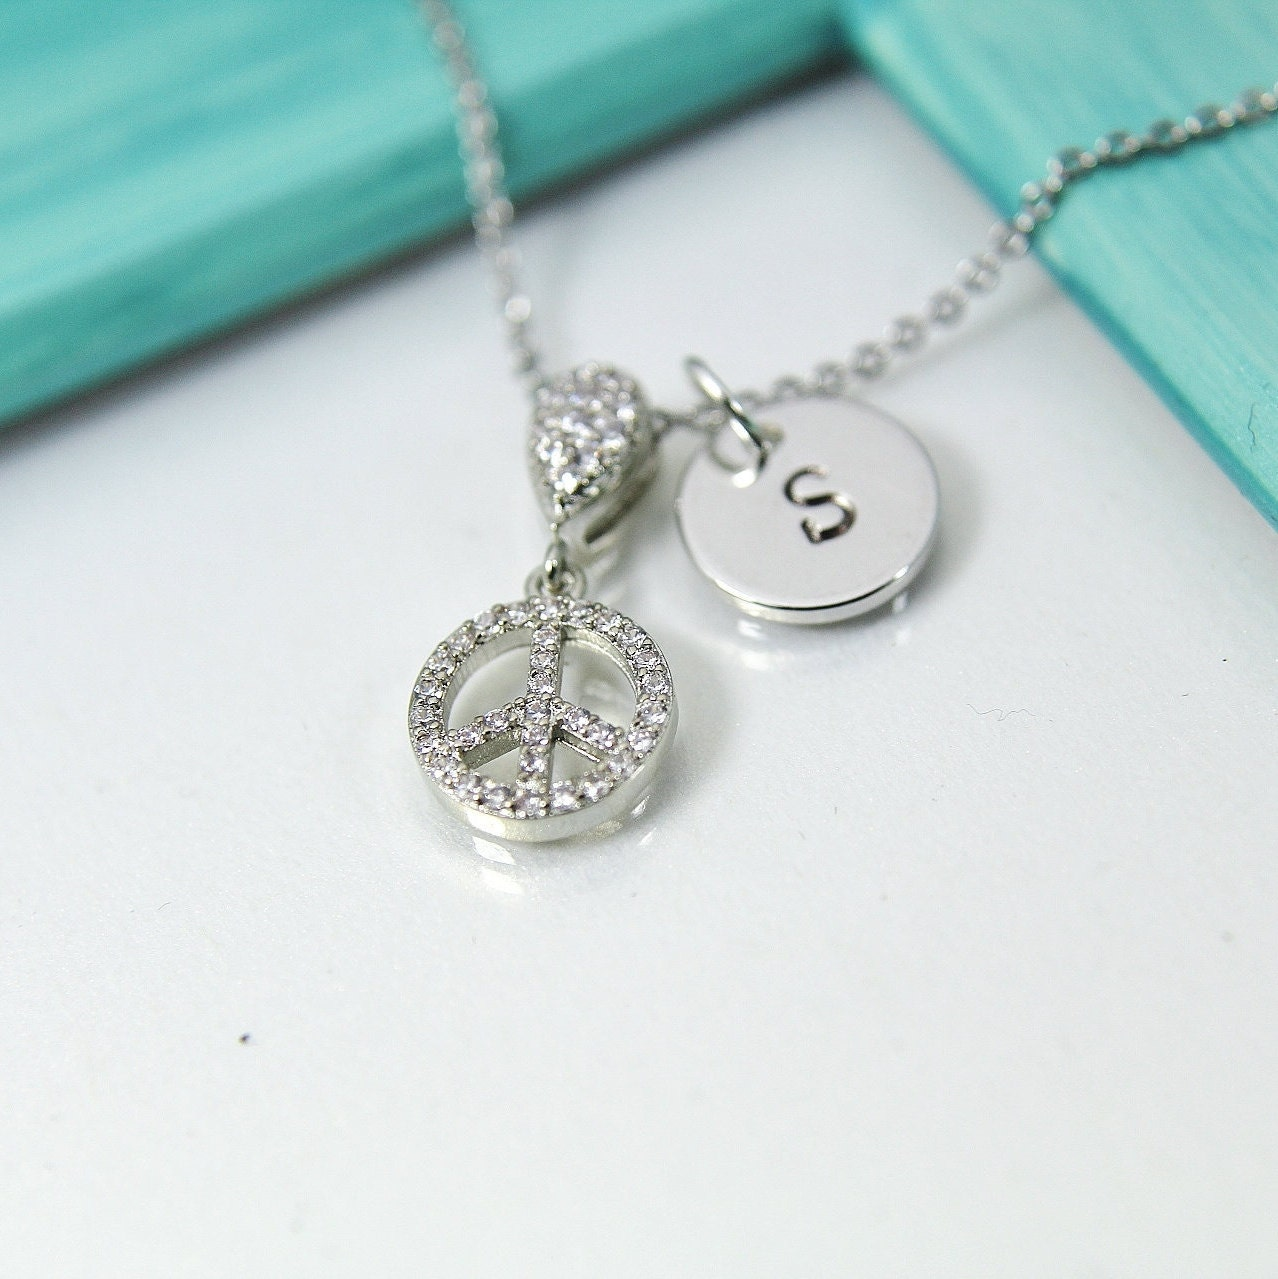 Silver Peace Necklace, Peace Sign Charm, Peace Gift, Dainty Necklace, Delicate Jewelry, Minimal Necklace, Personalized Gift, S038